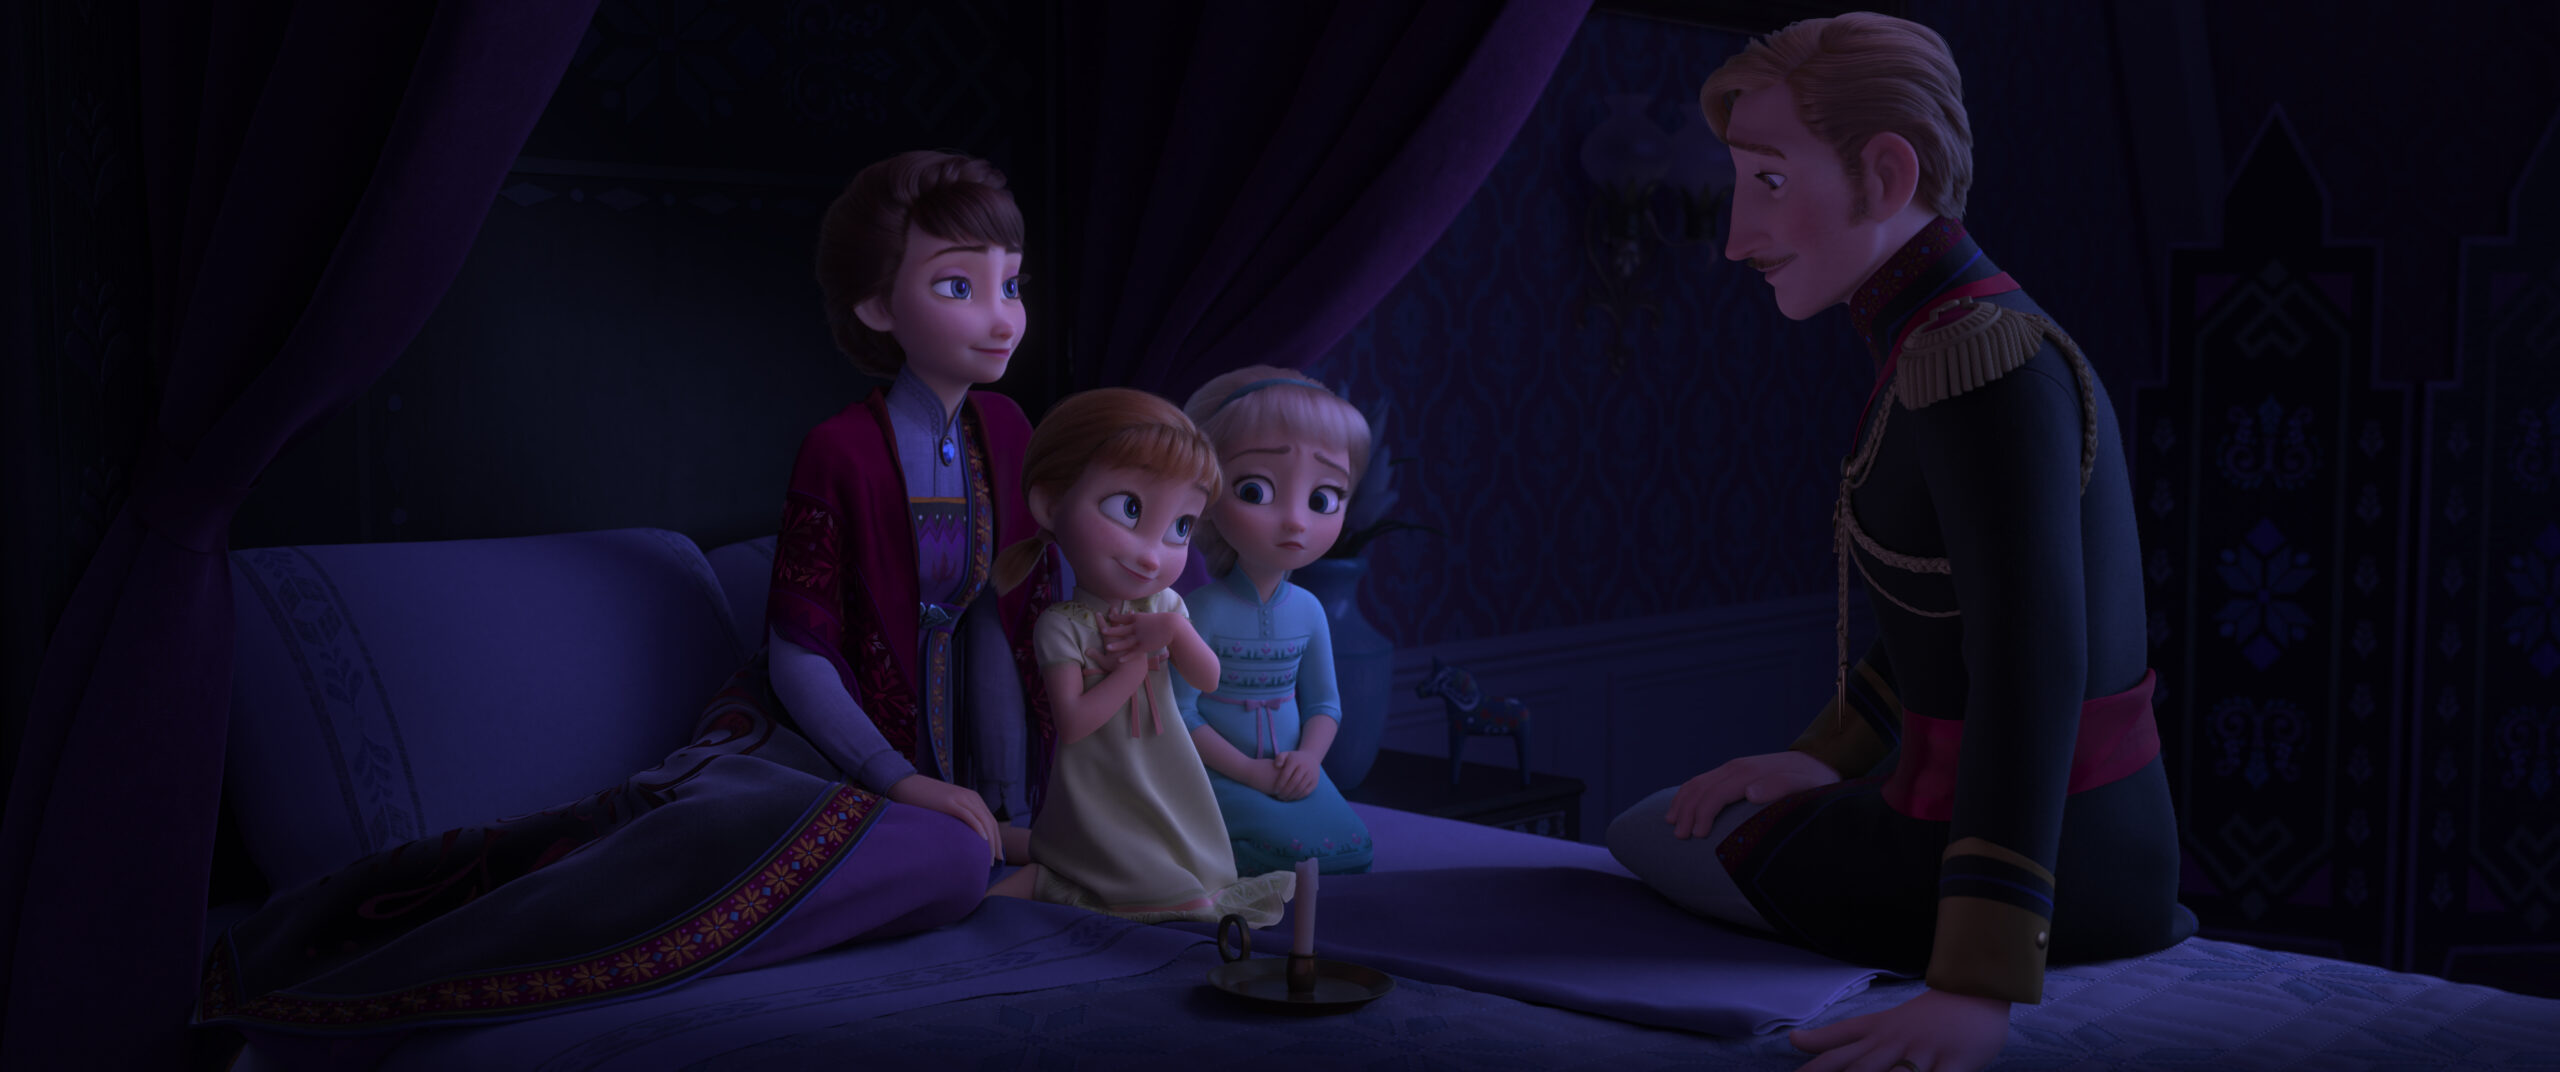 Looking for an honest Frozen 2 review? This tells you if it's scary!